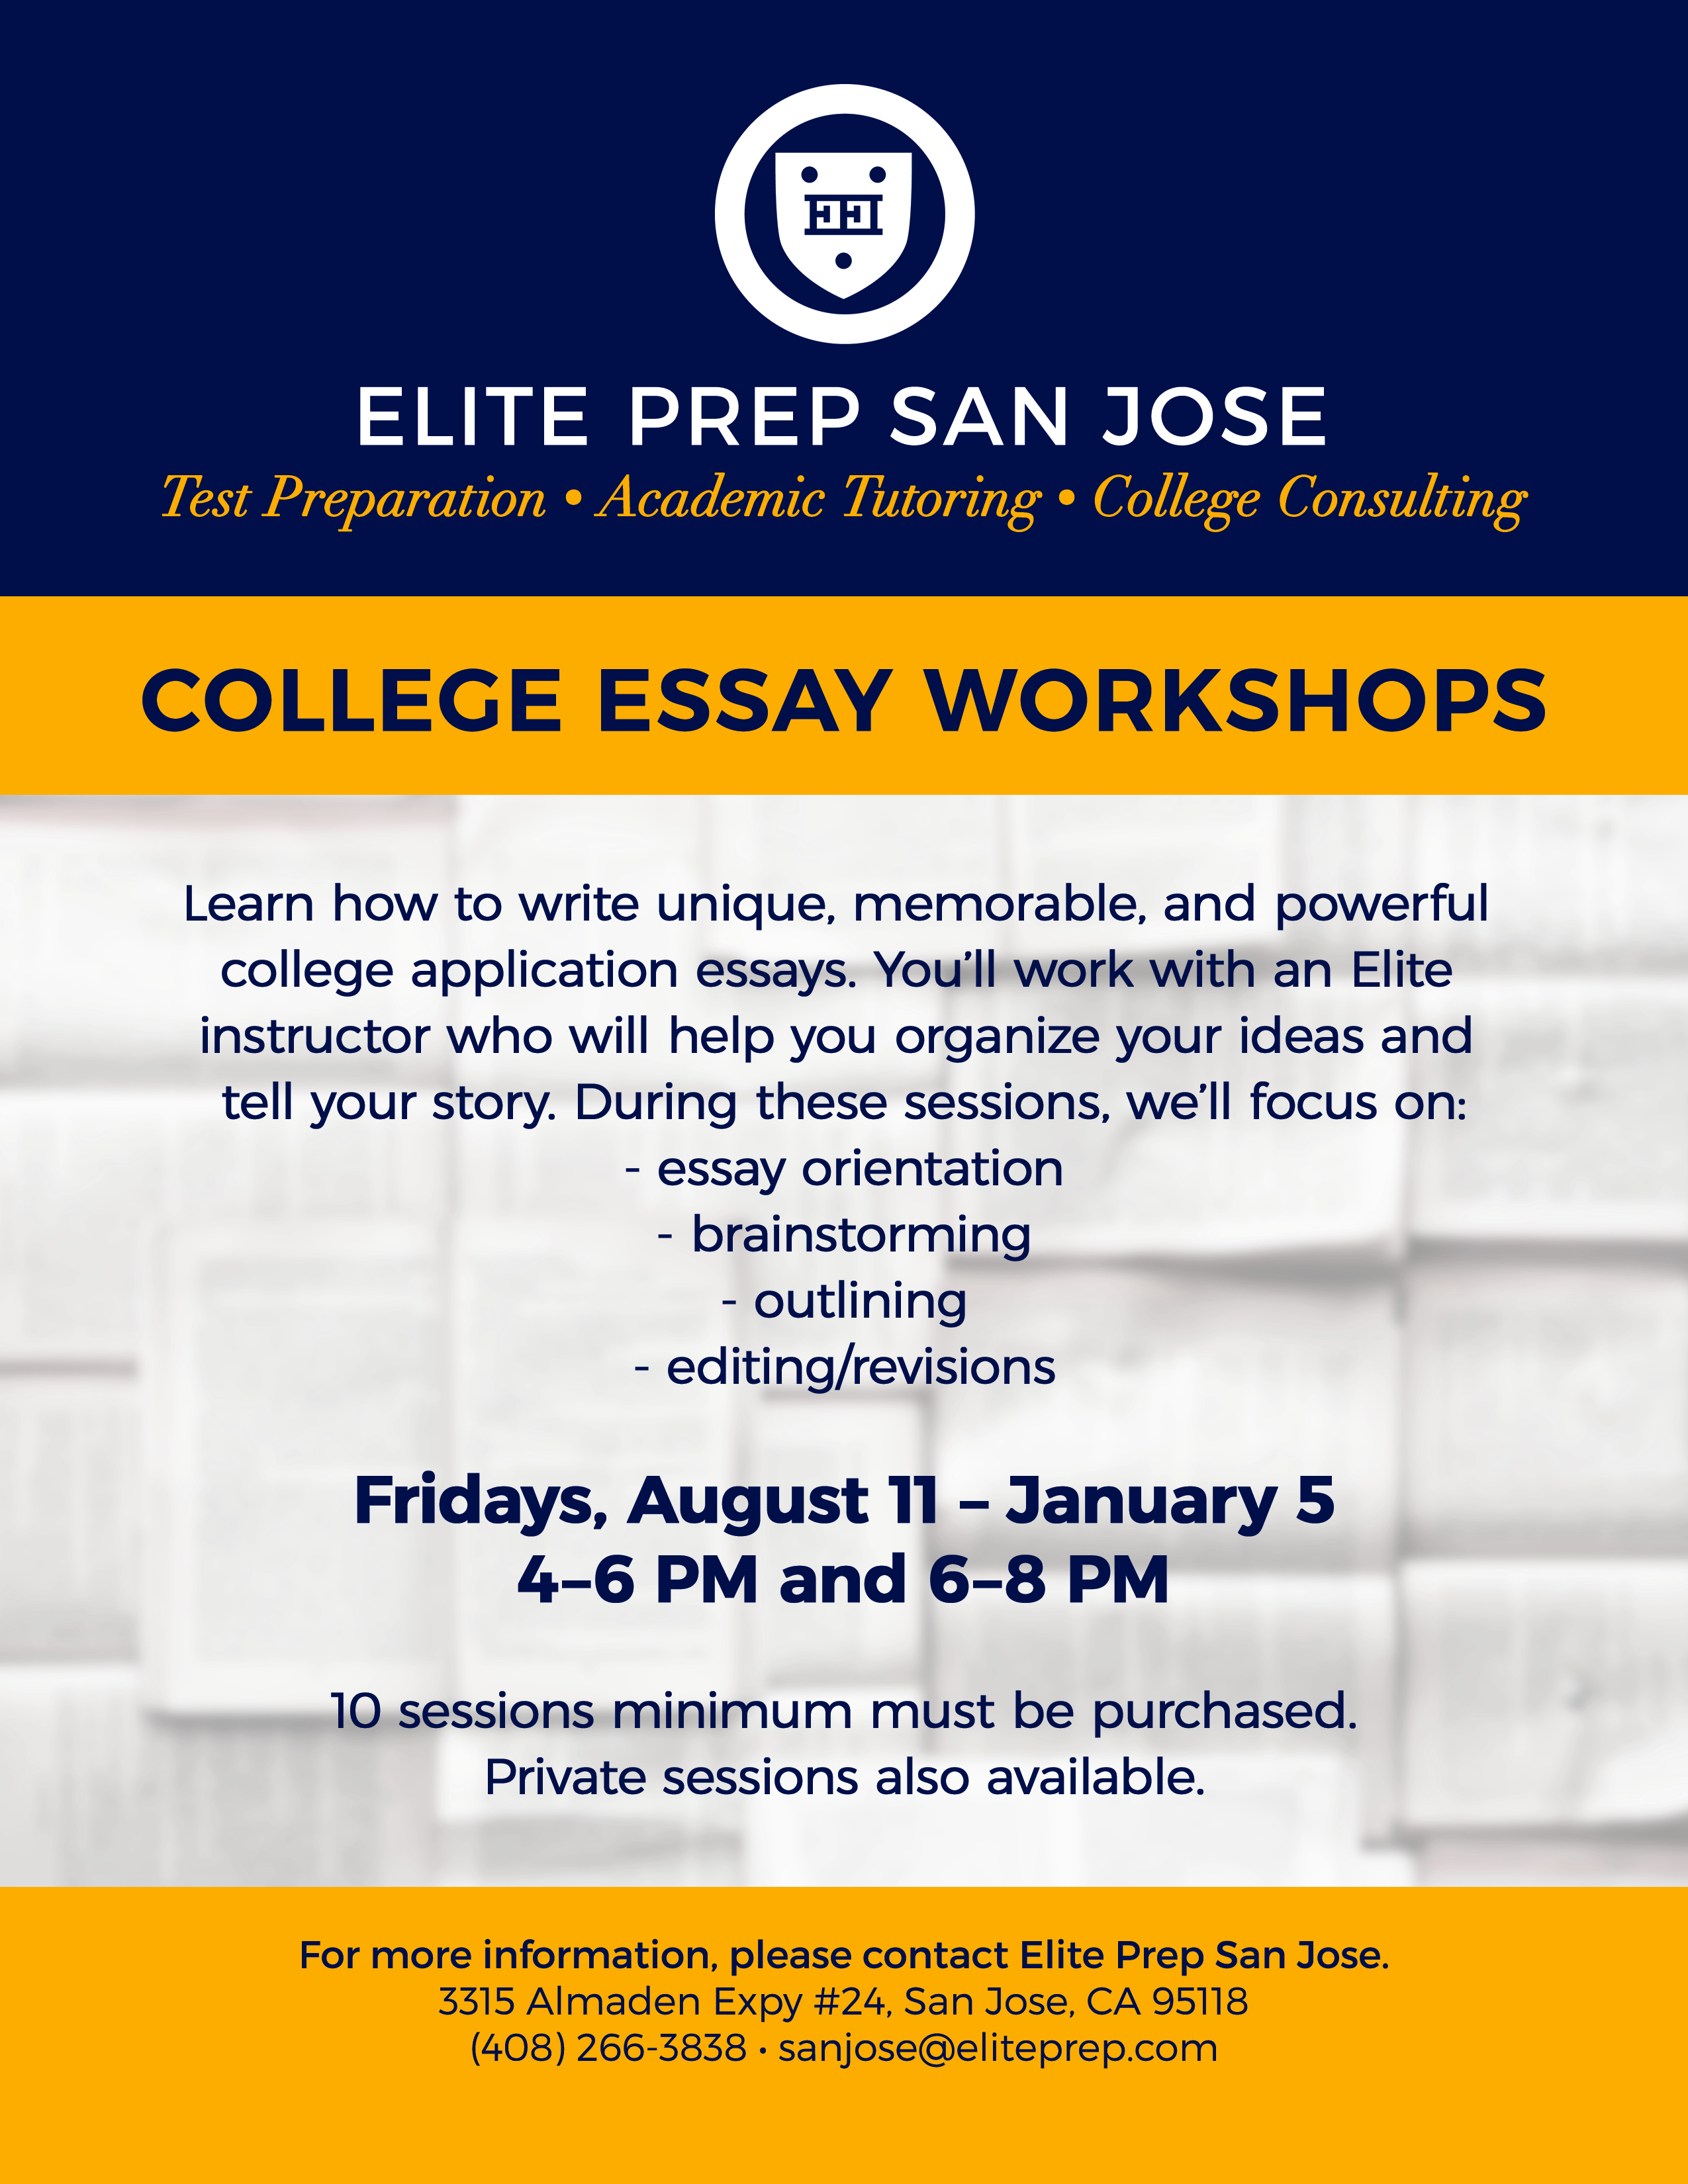 Writing a strong college application essay